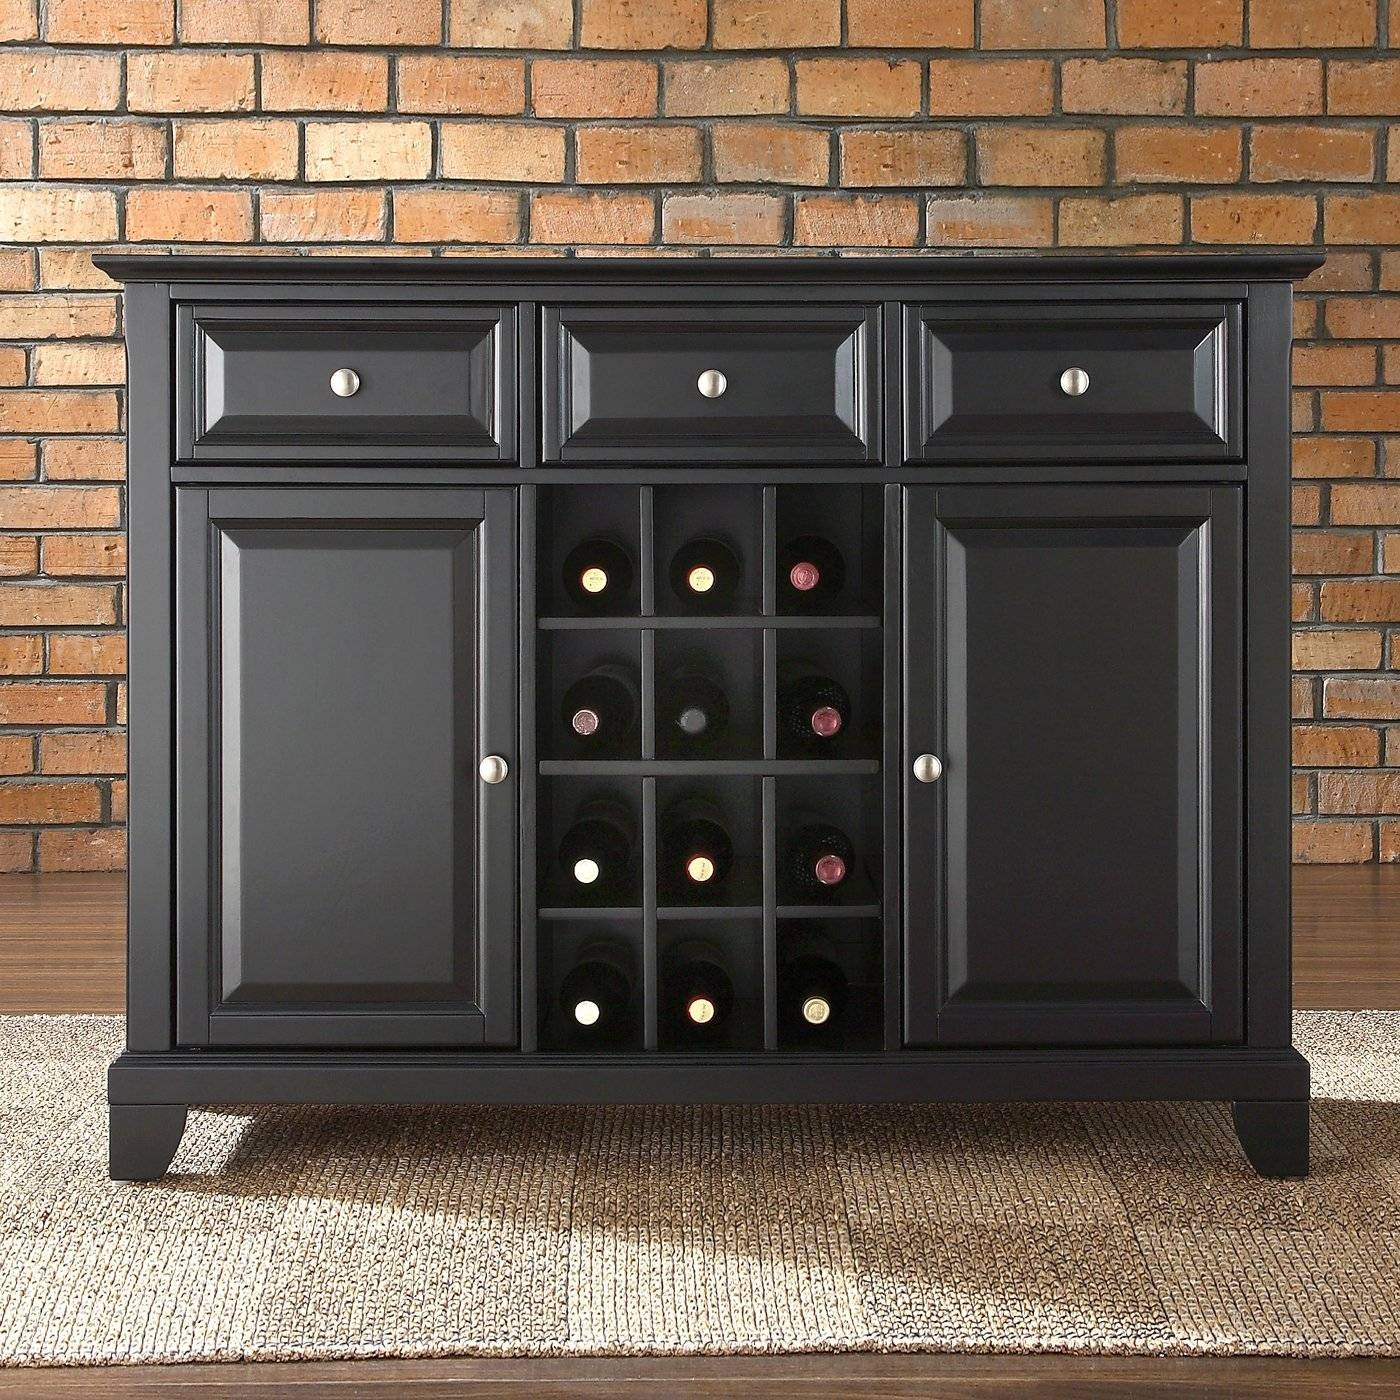 Using Old Oak Sideboard Buffet » Home Decorations Insight pertaining to Black Buffet Sideboards (Image 15 of 15)